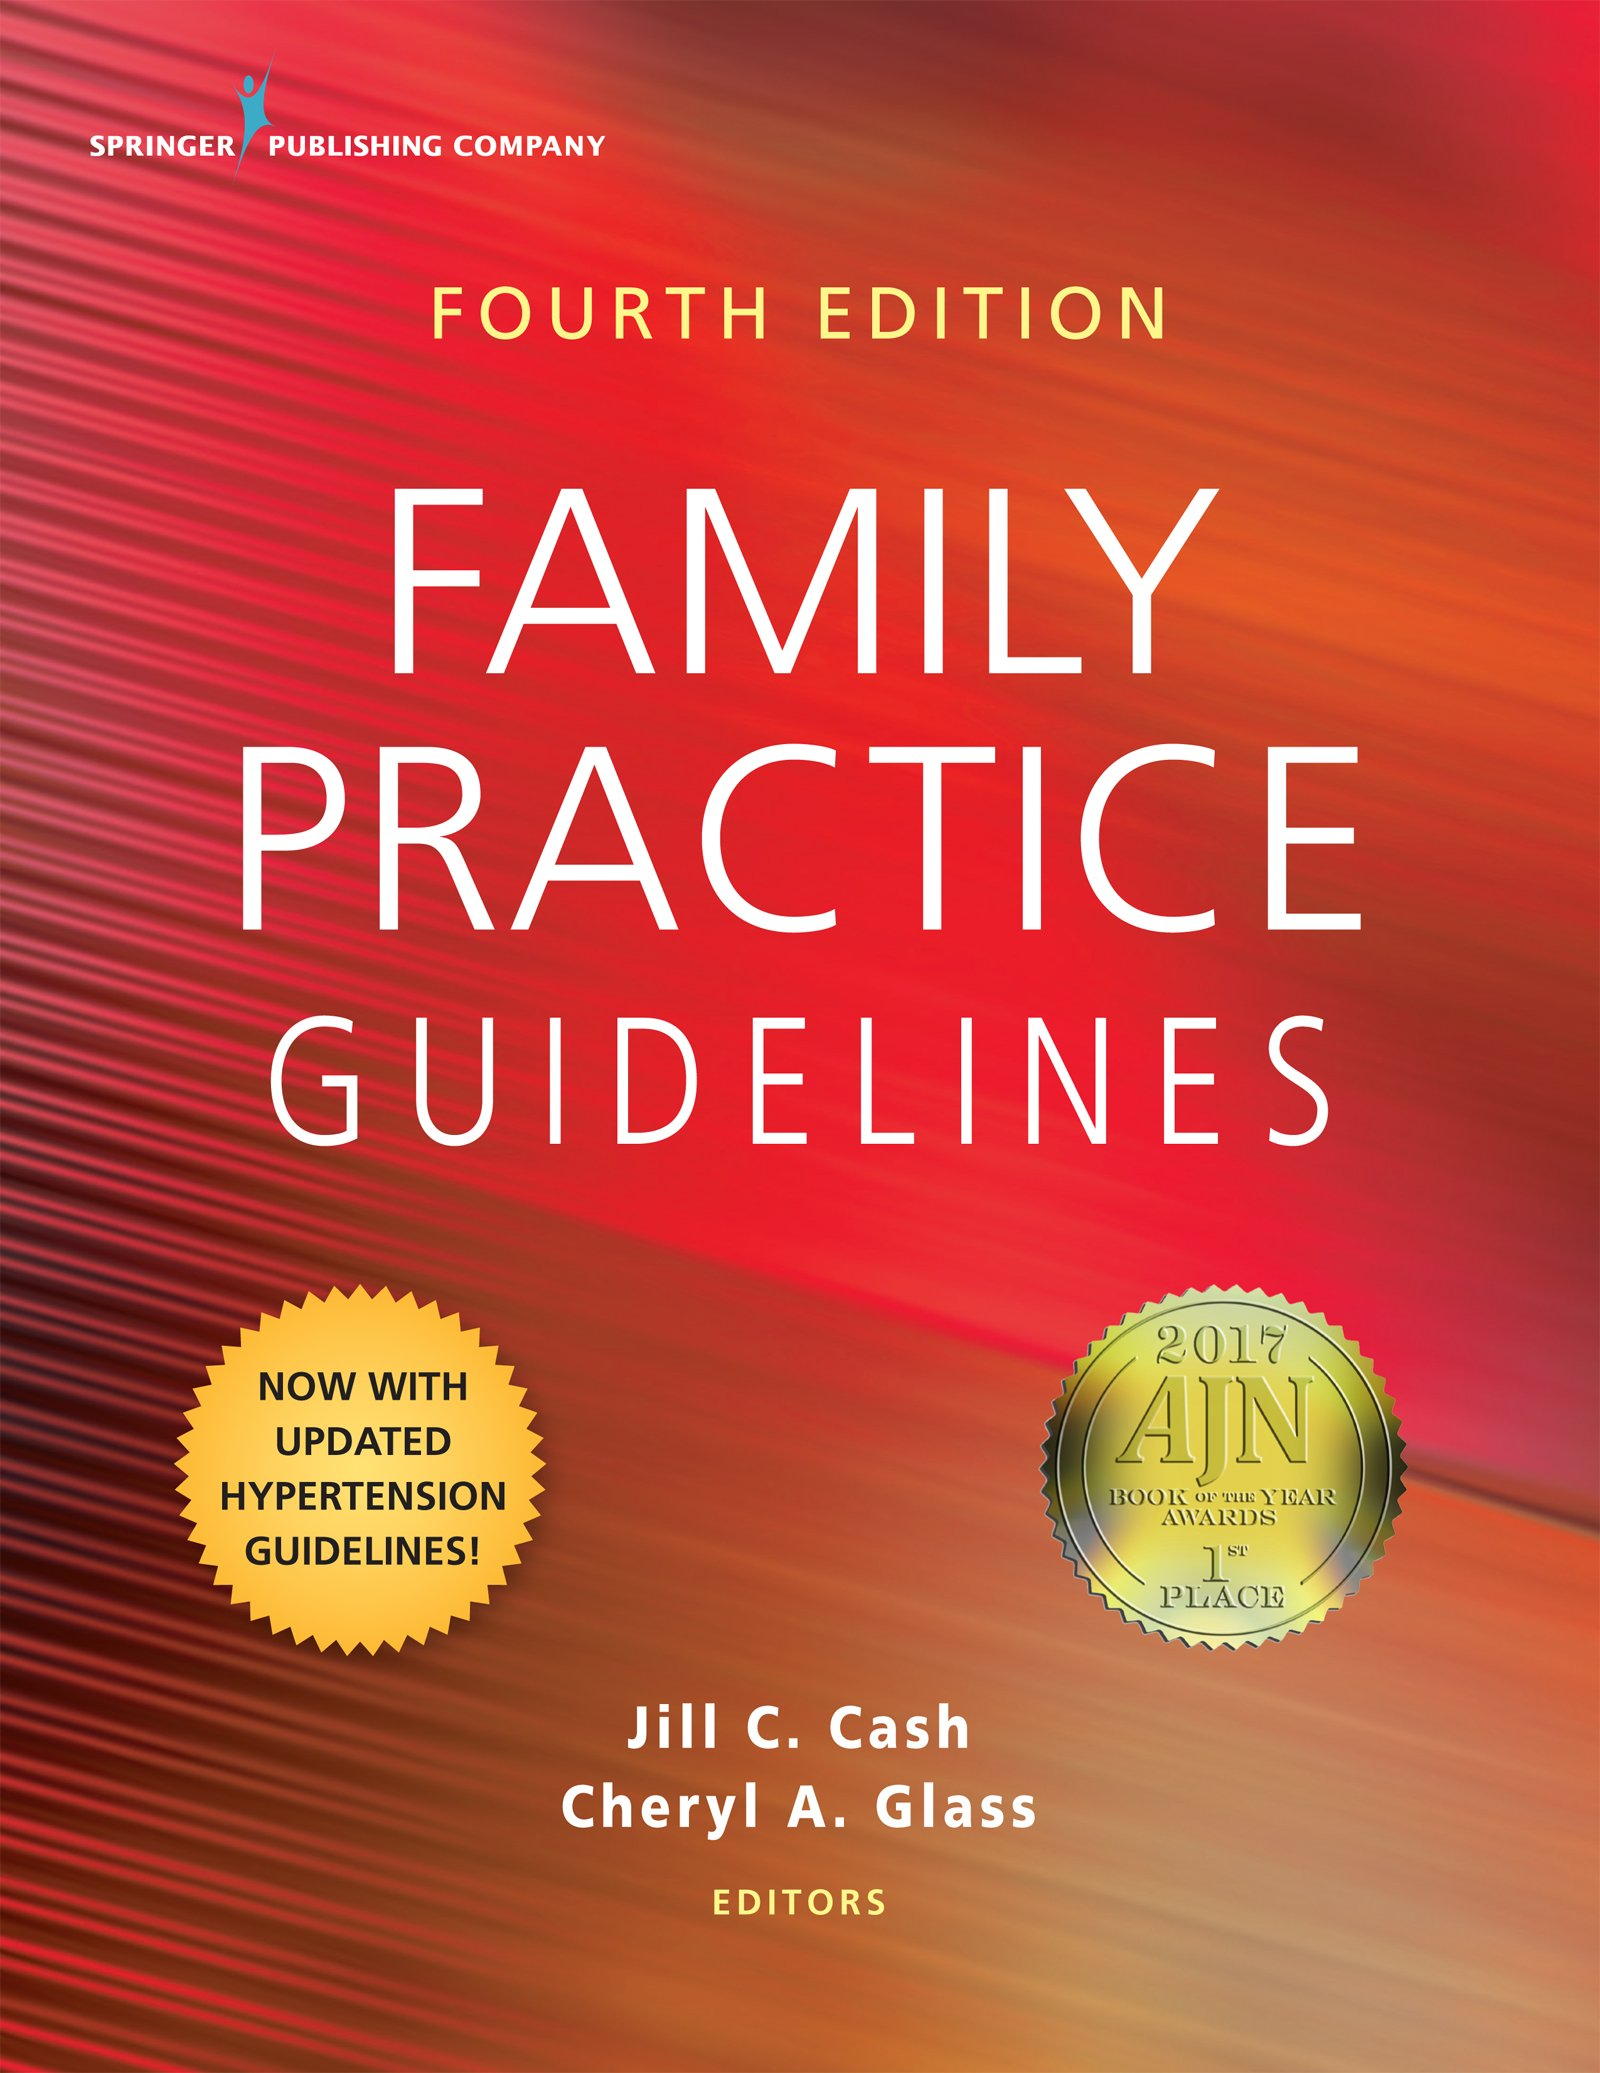 Image OfFamily Practice Guidelines, Fourth Edition